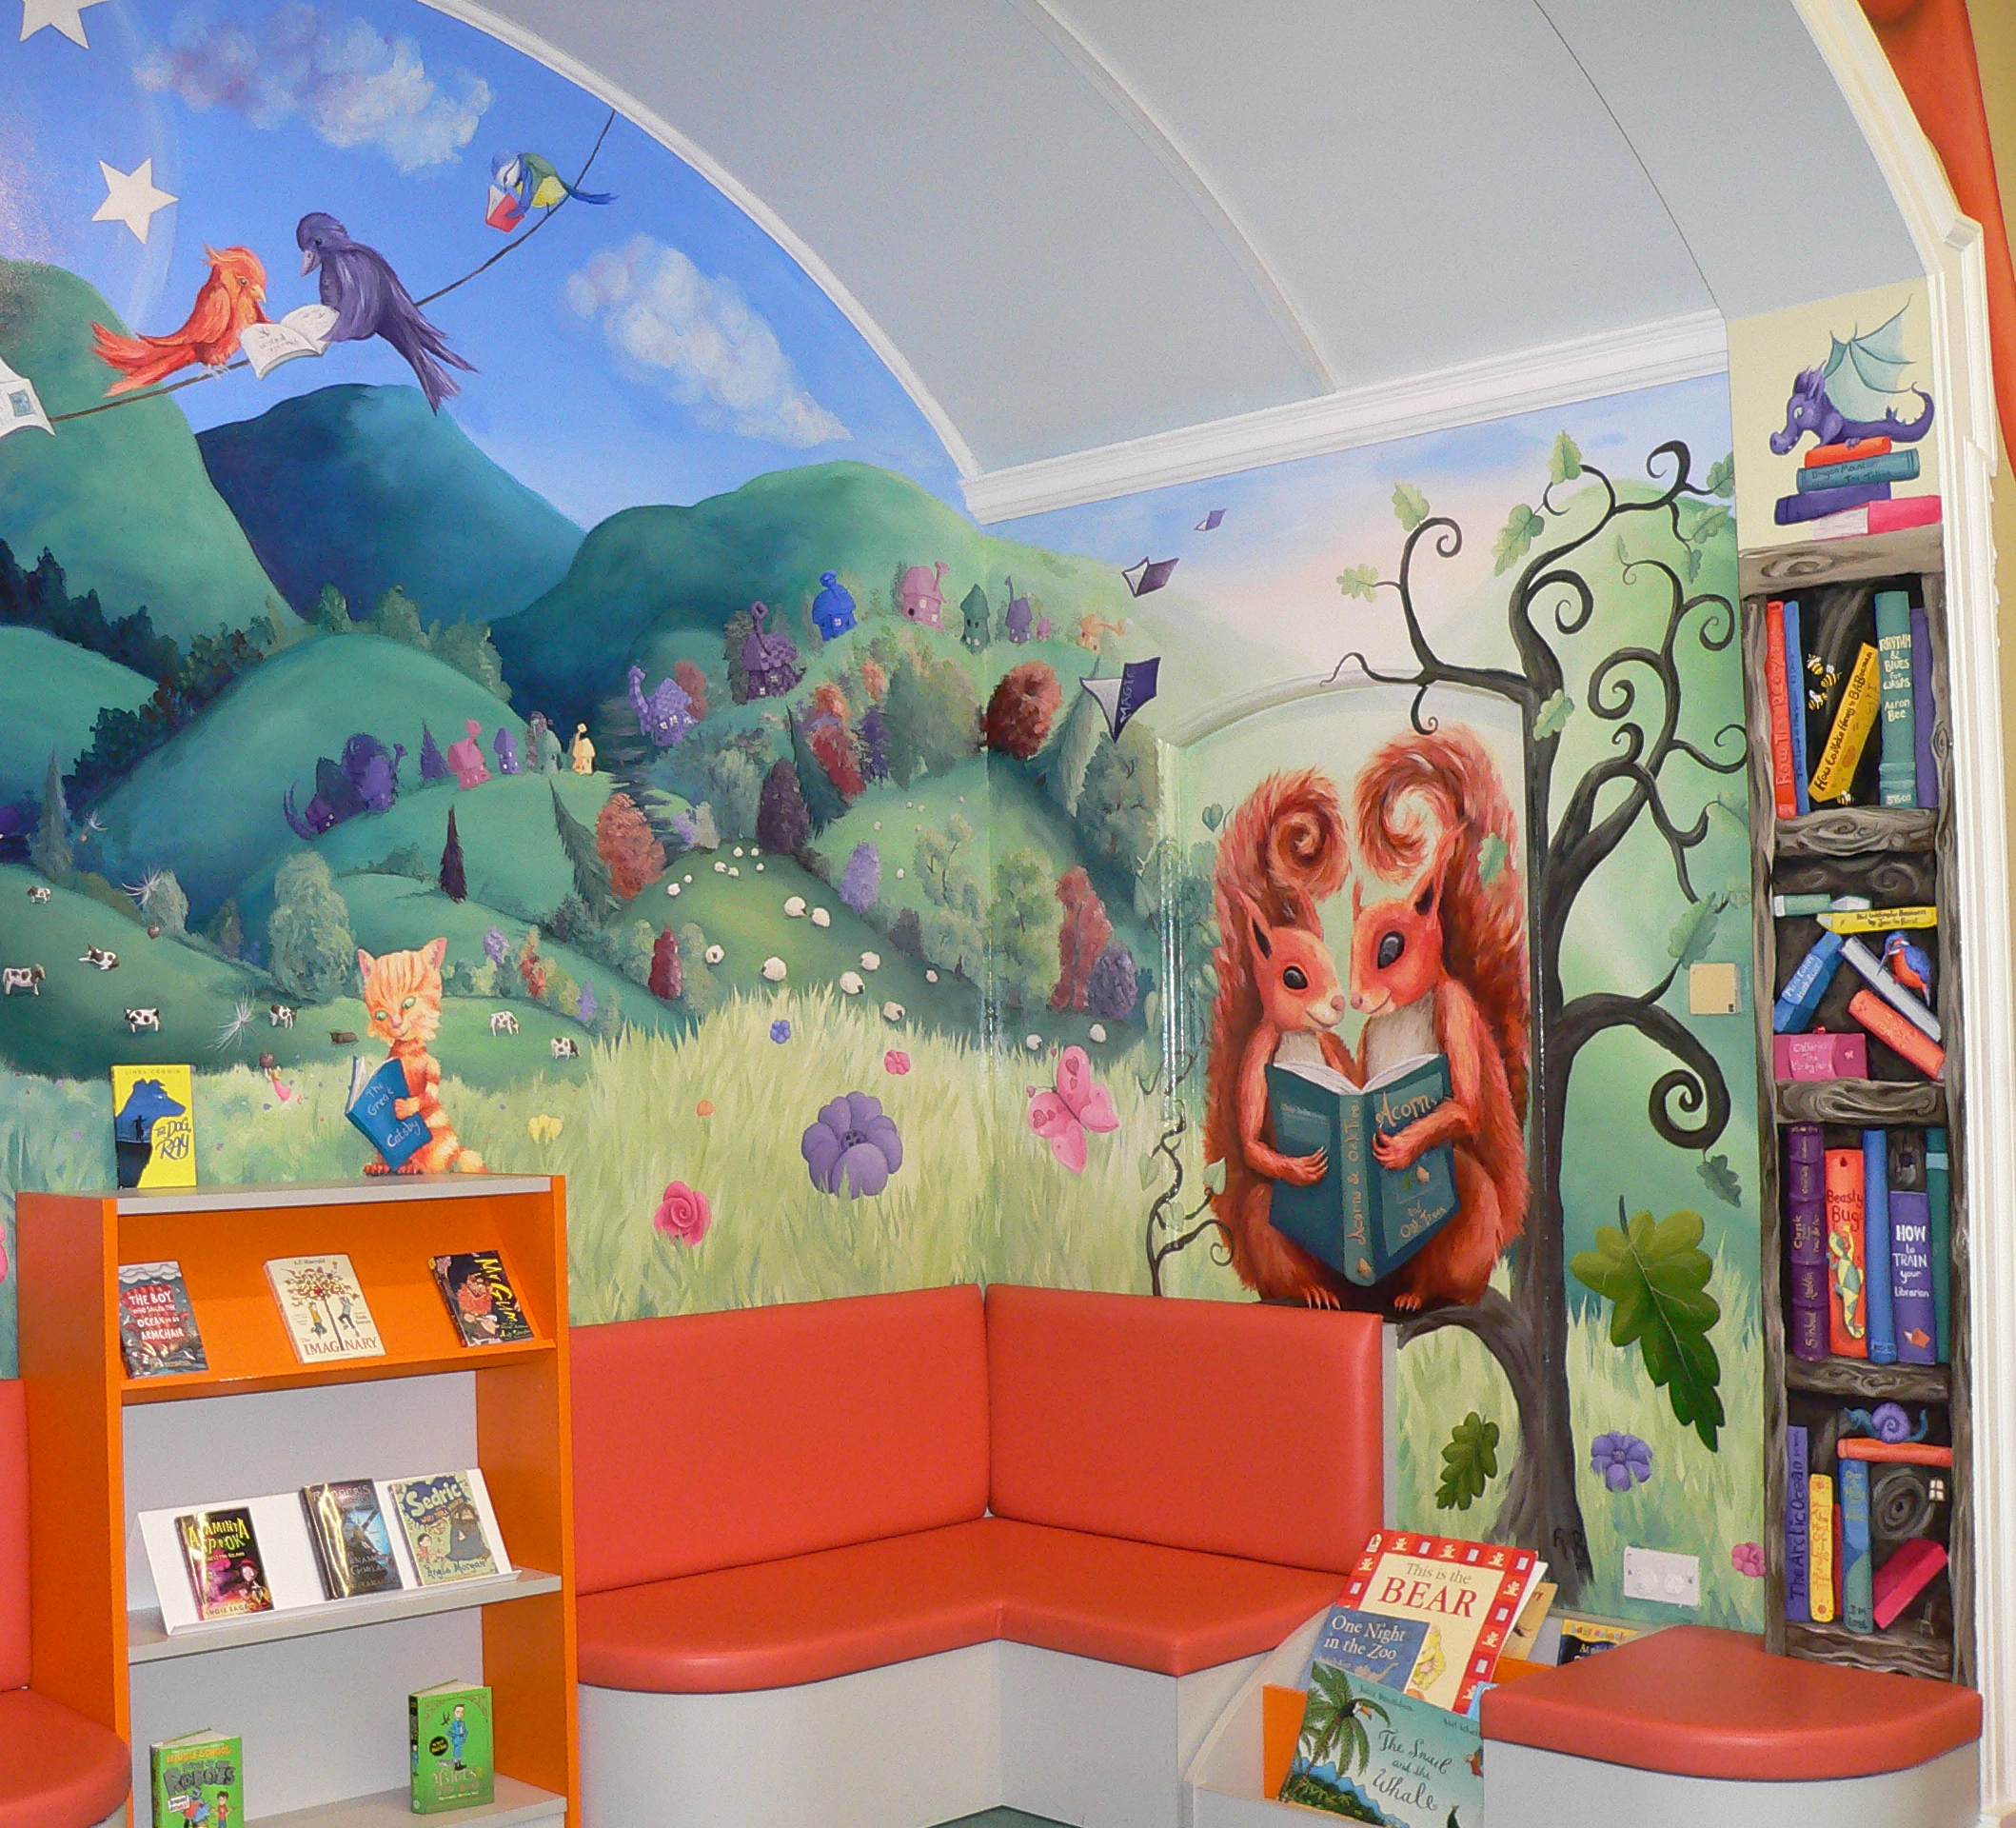 Malvern Library Children's section mural